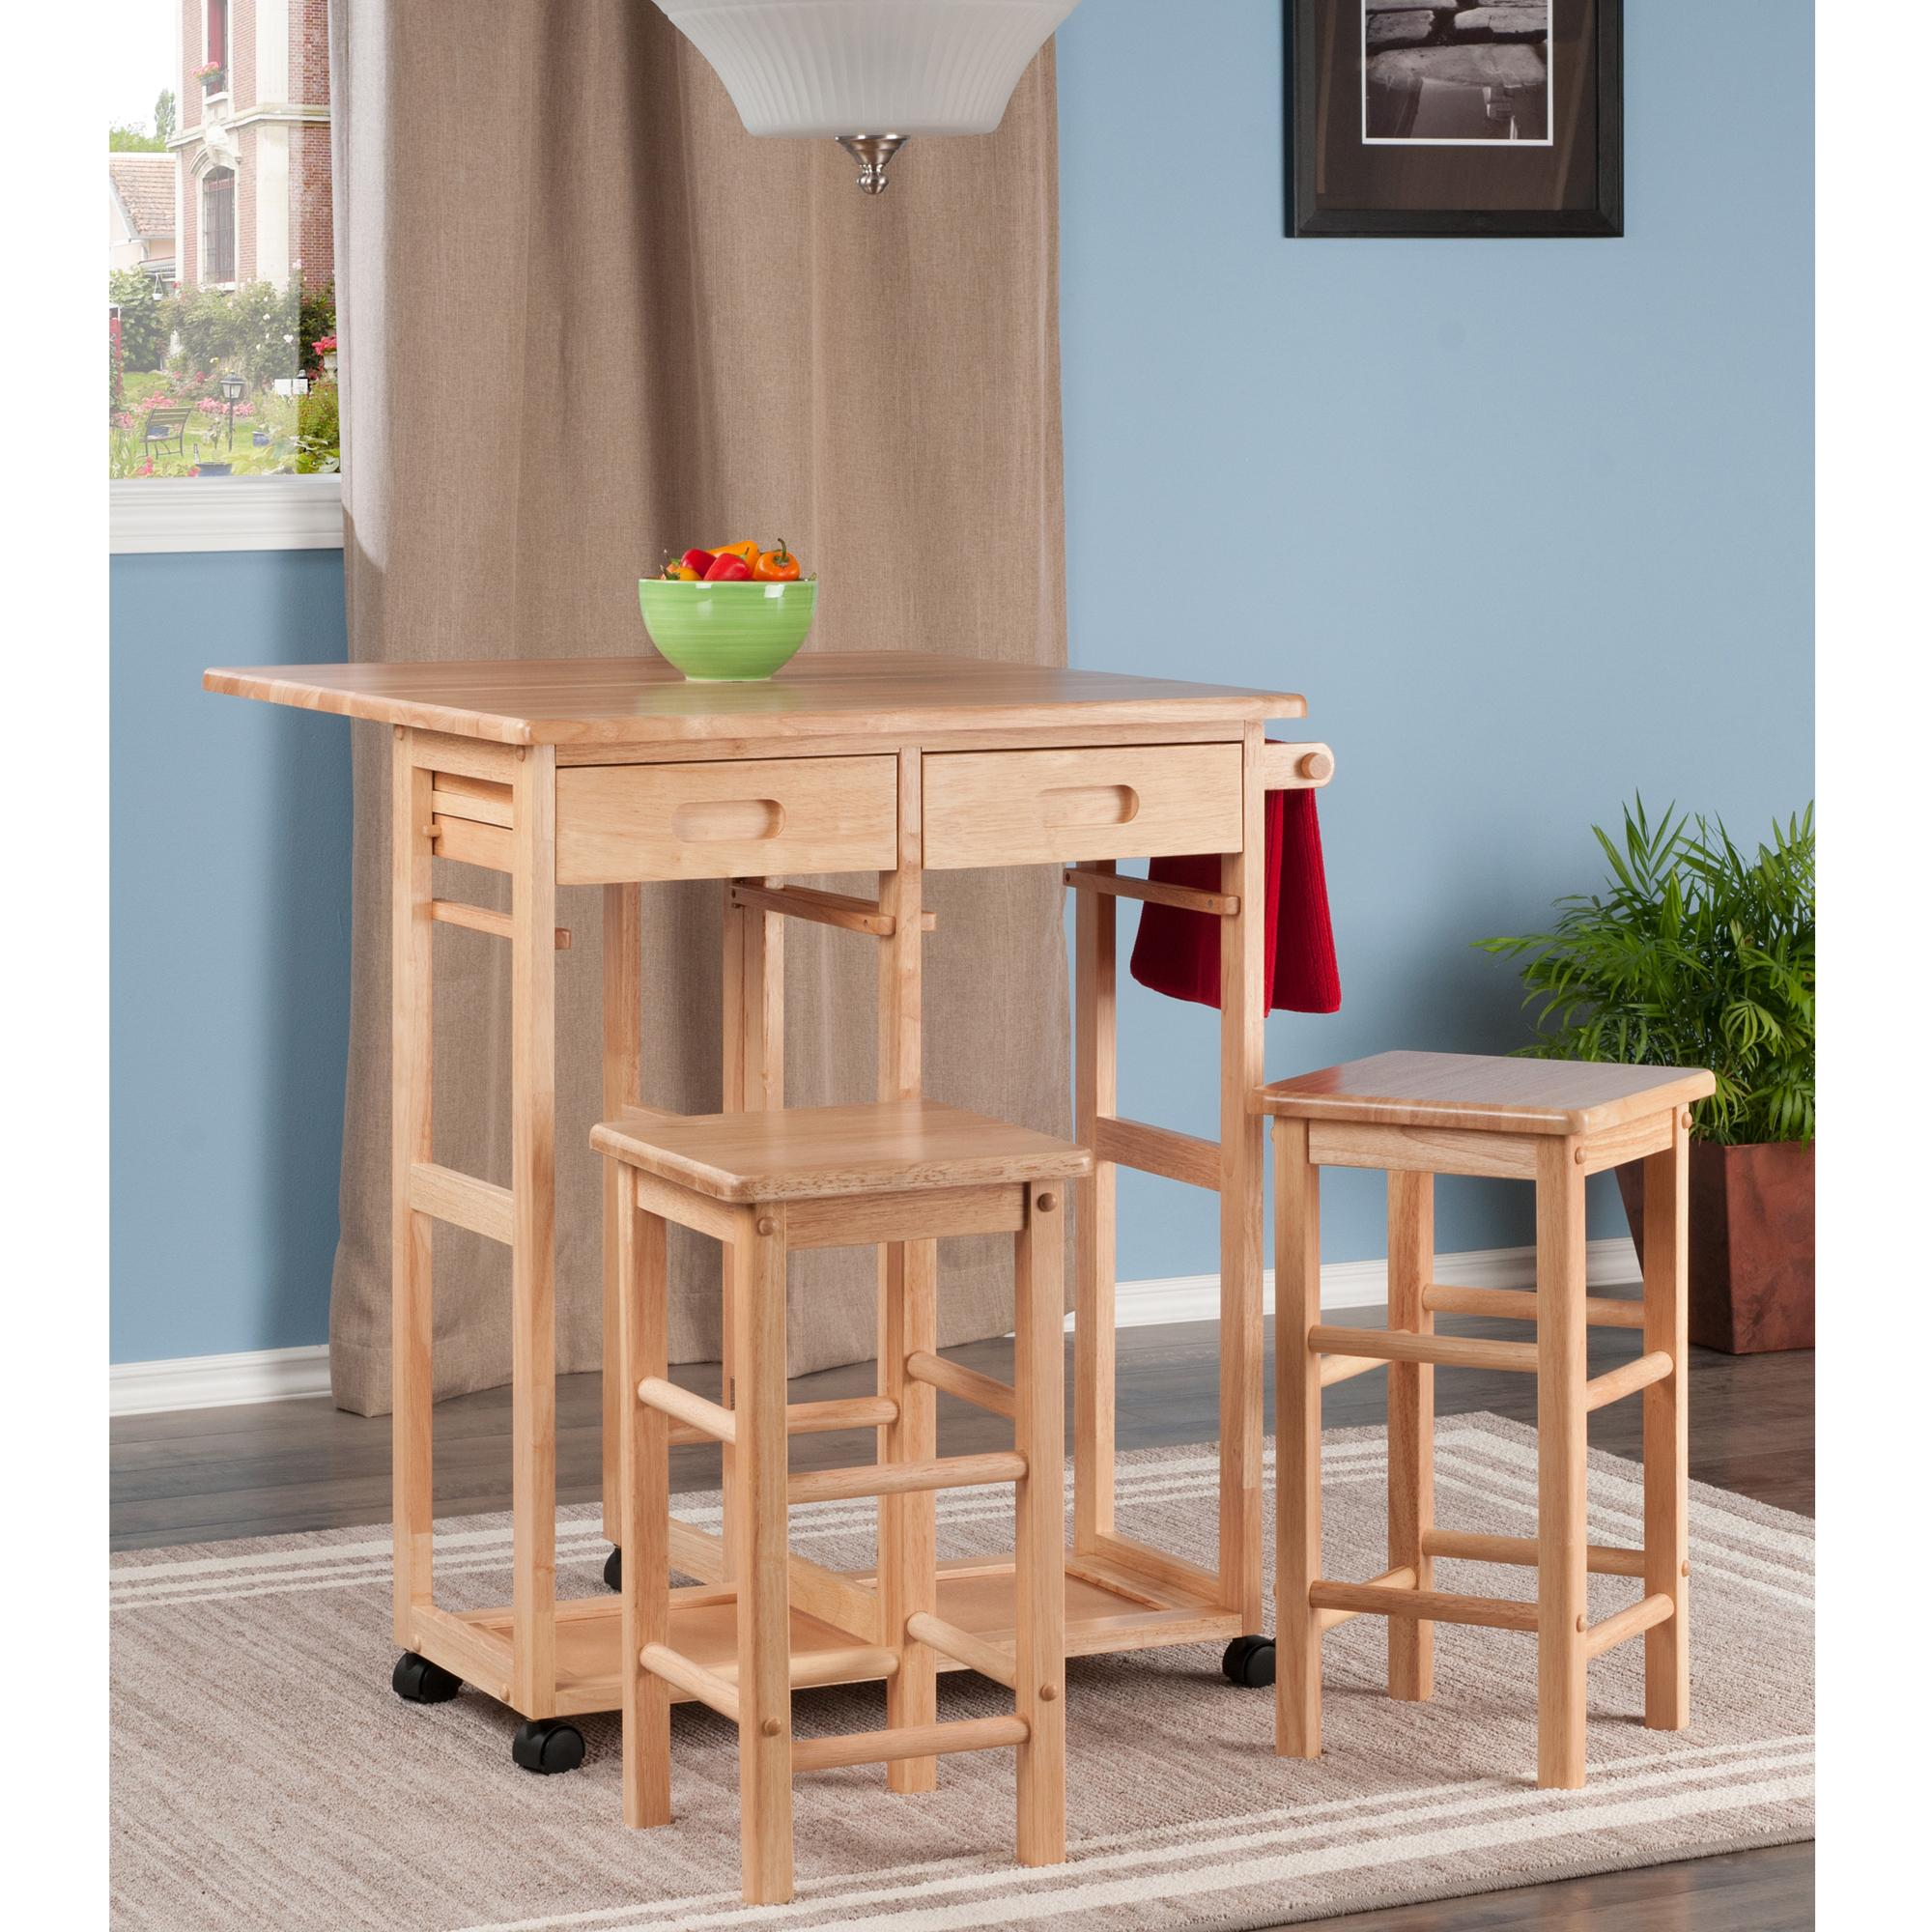 Winsome wood 89330 suzanne kitchen square - Square kitchen island with seating ...